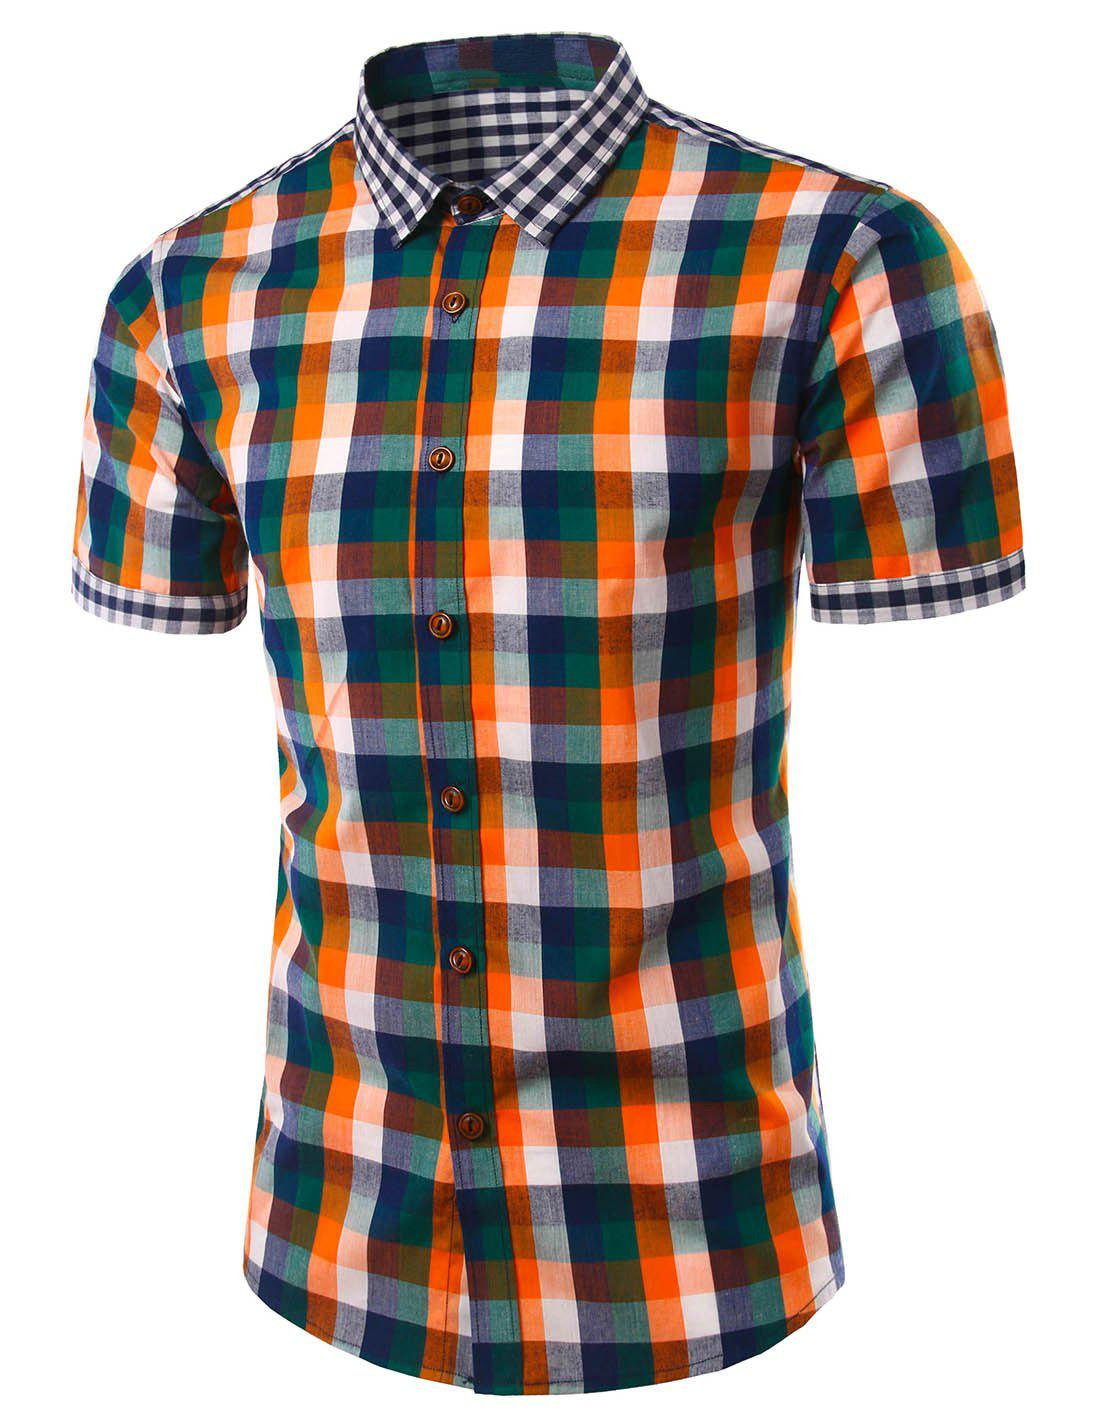 Slim Fit Turn Down Collar Plaid manches courtes Shirts pour hommes - Tangerine L